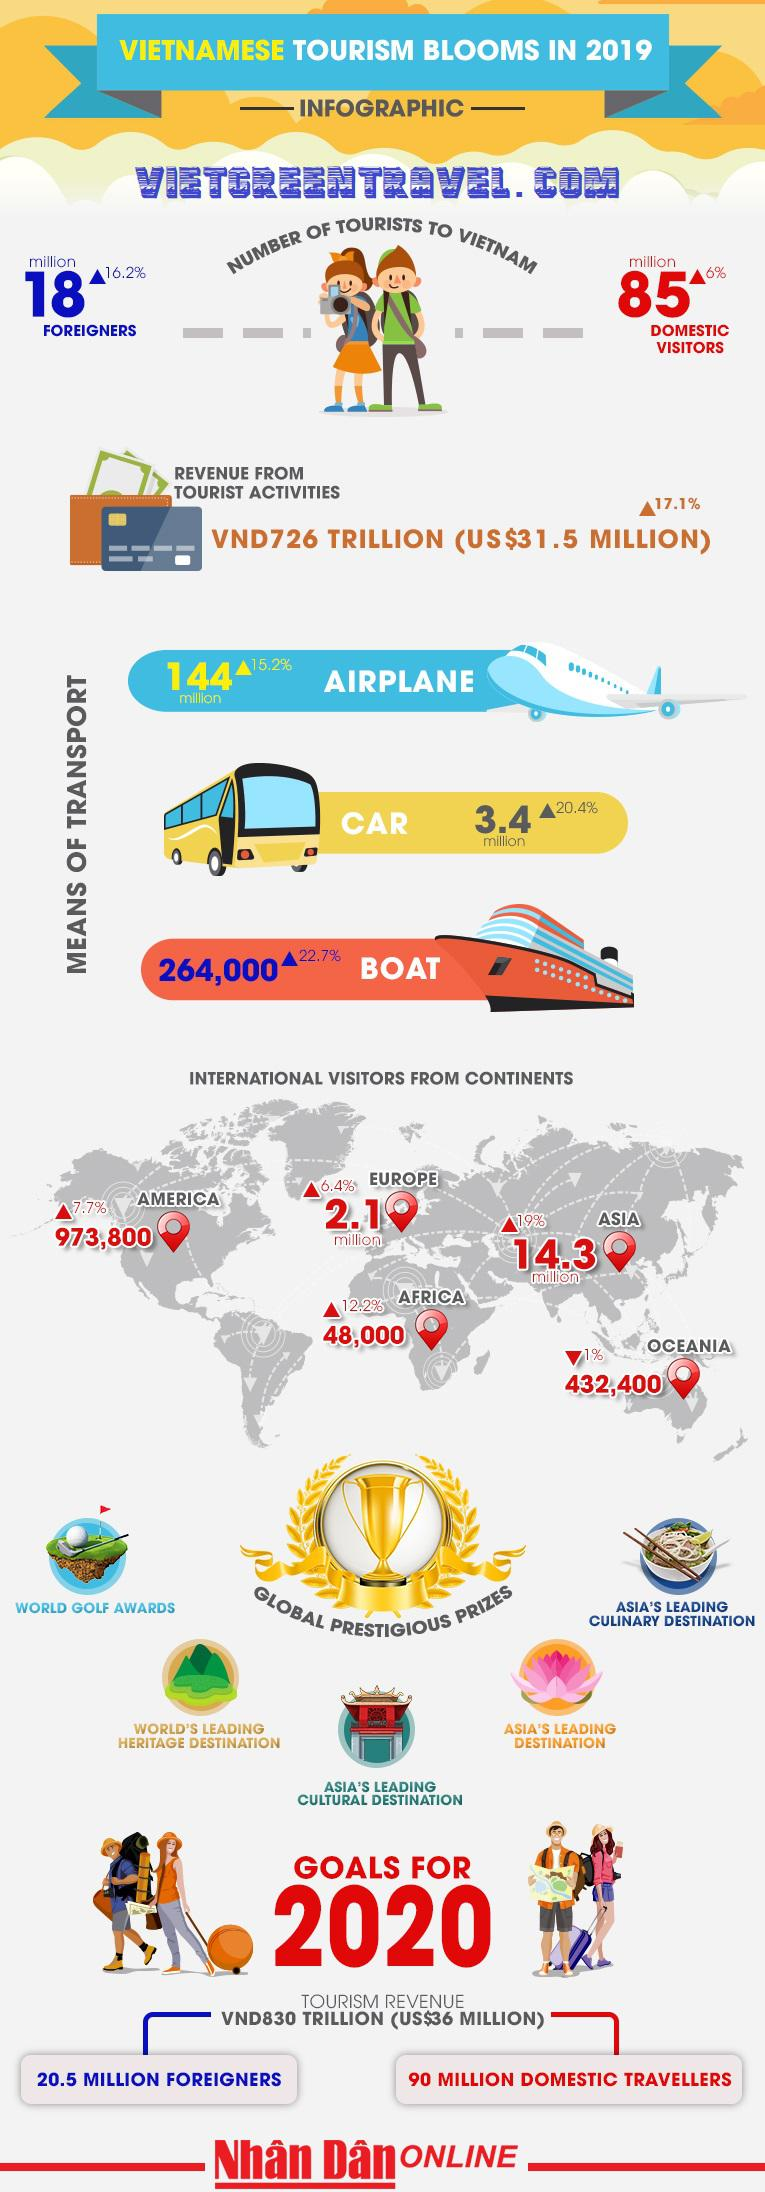 Vietnamese tourism blooms in 2019 [Infographic]